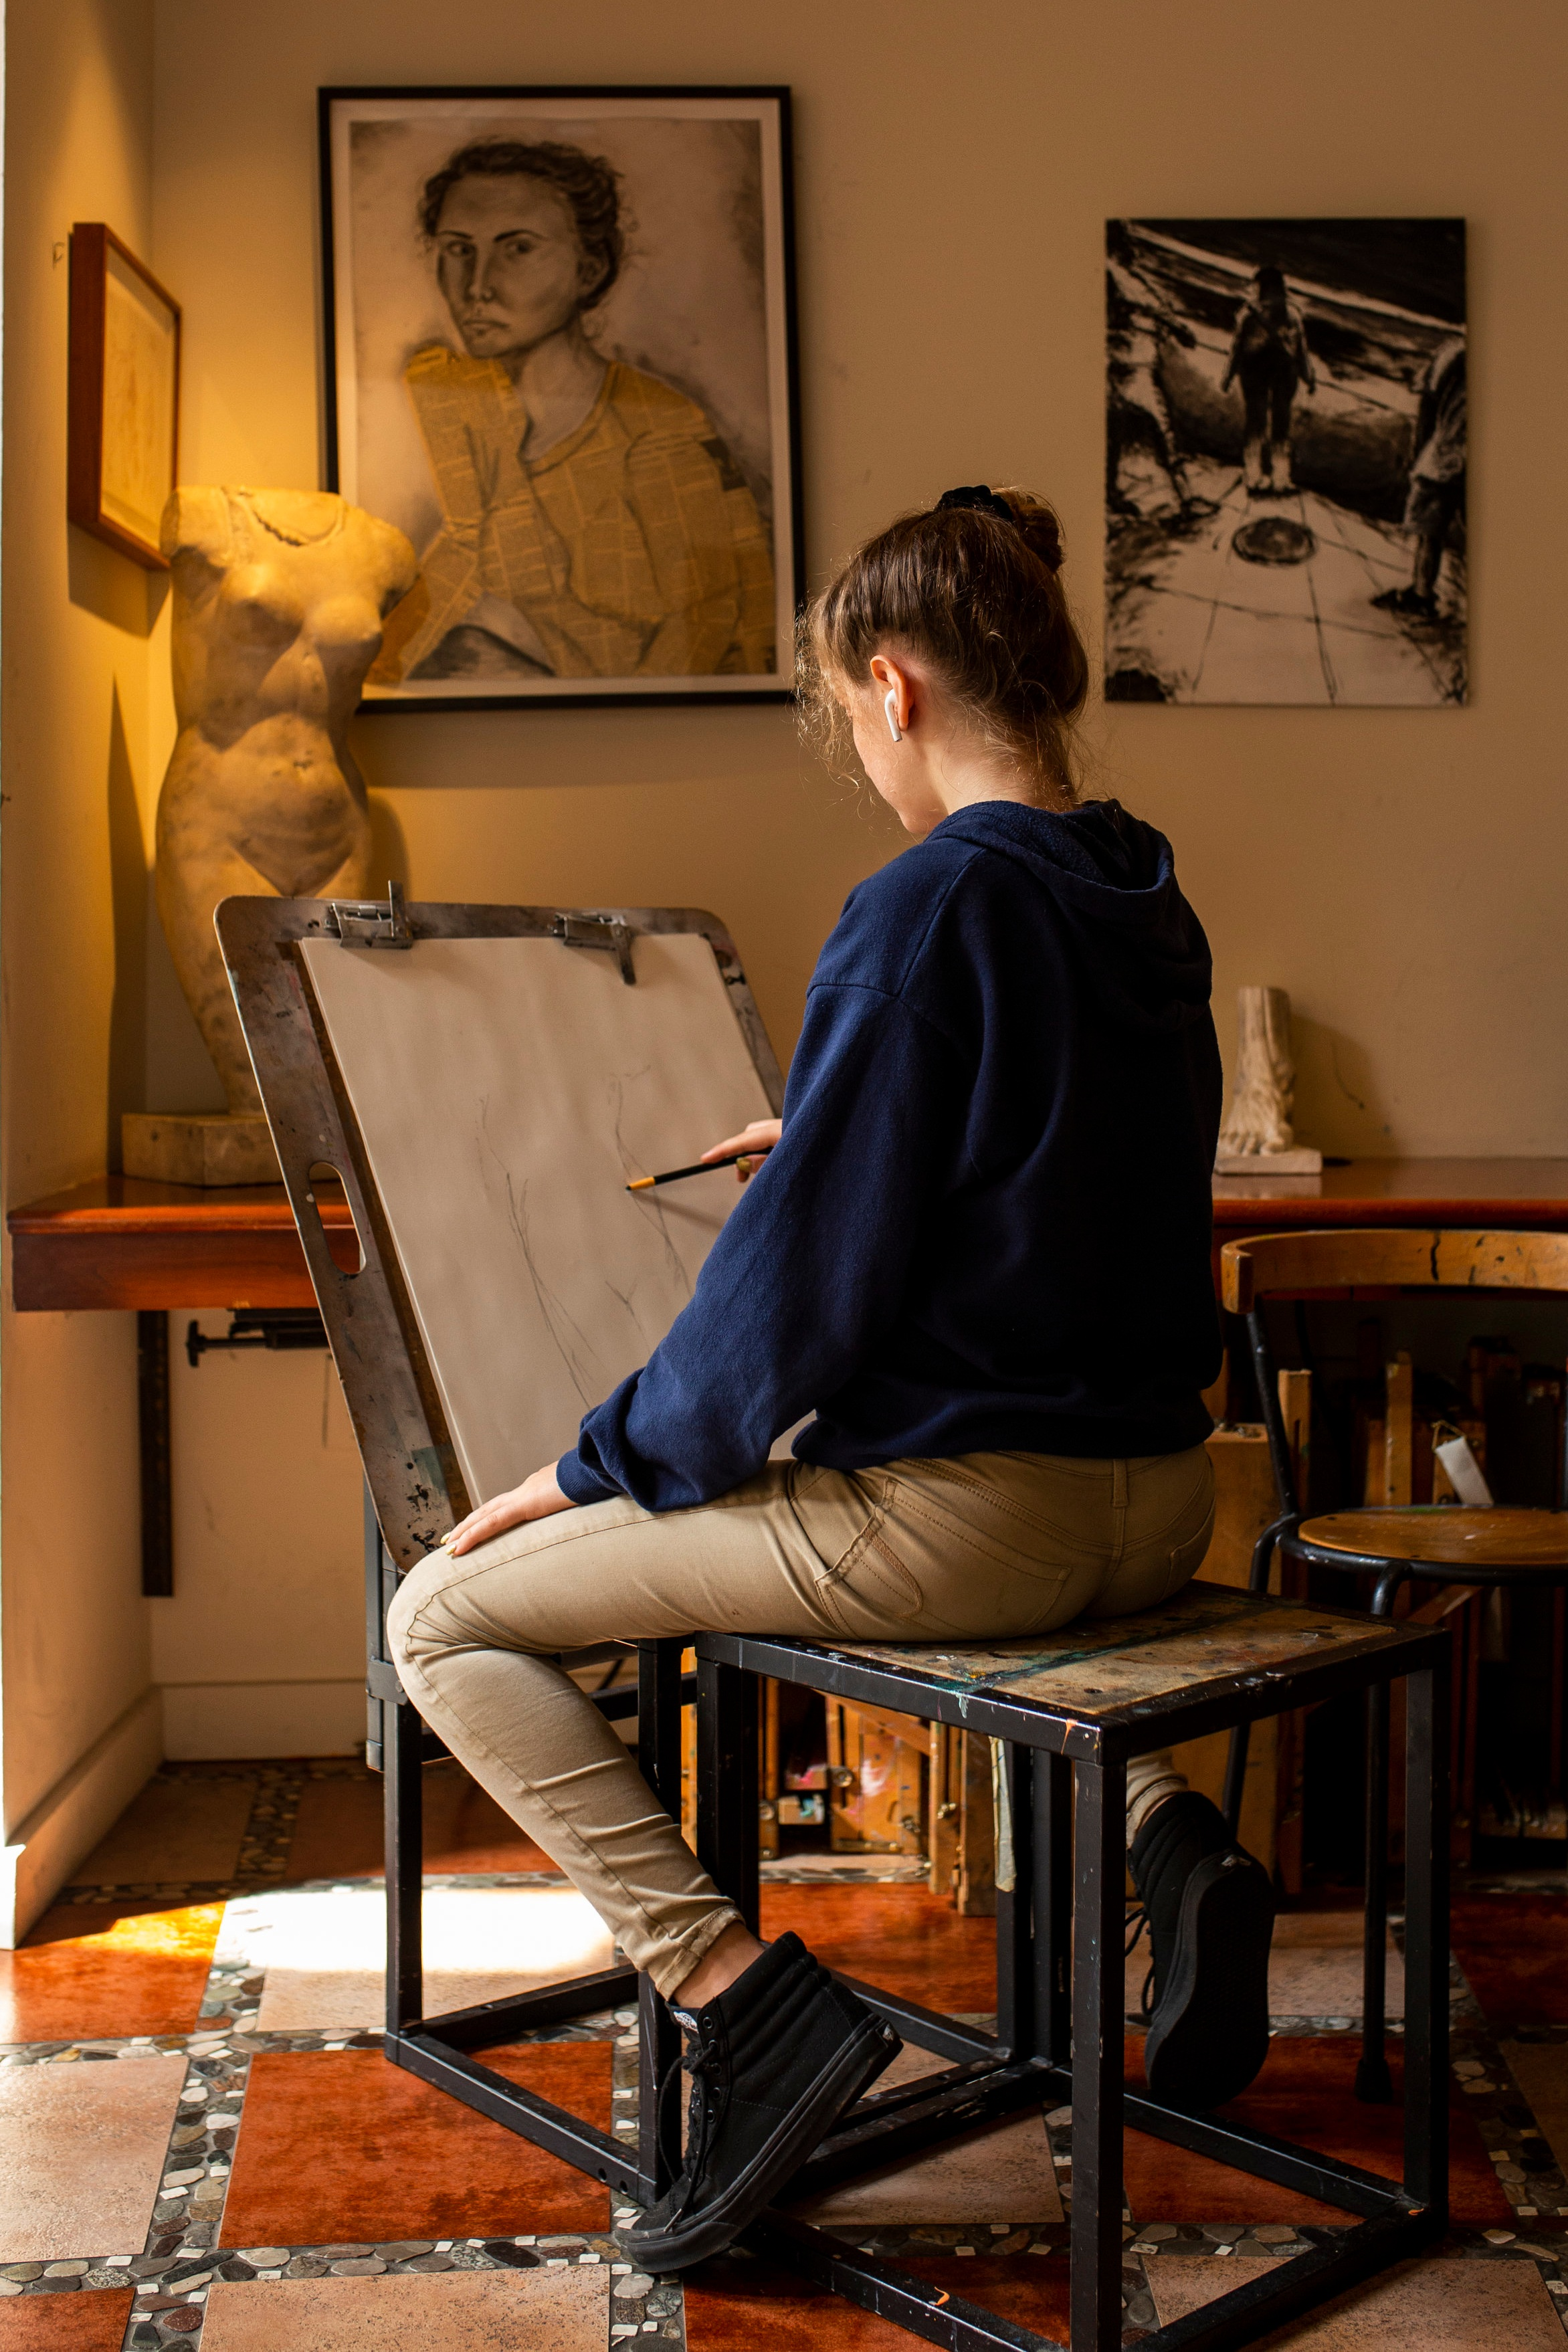 Ross Upper School student sketching at her easel, surrounded by replicas of iconic drawings and sculpture.